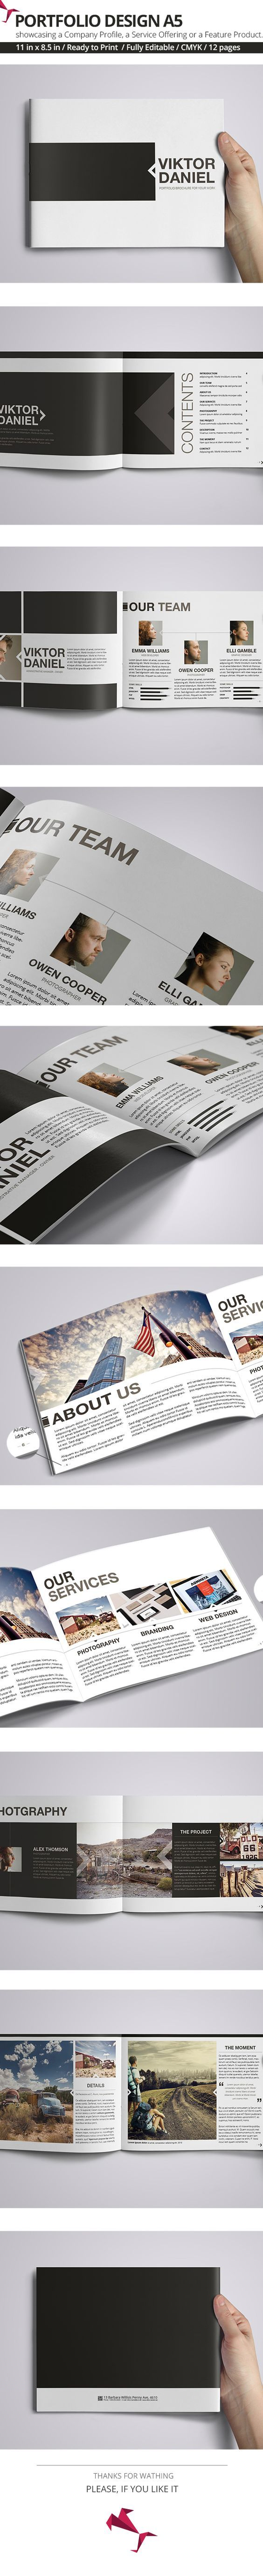 Viktor Daniel Portfolio Design A5 is a personal portfolio Indesign template, is a unique way of showcasing your work in a magazine style. You can insert Your own brands, images, text & change color of portfolio. This Indesign Files are Fully Editable. You…: